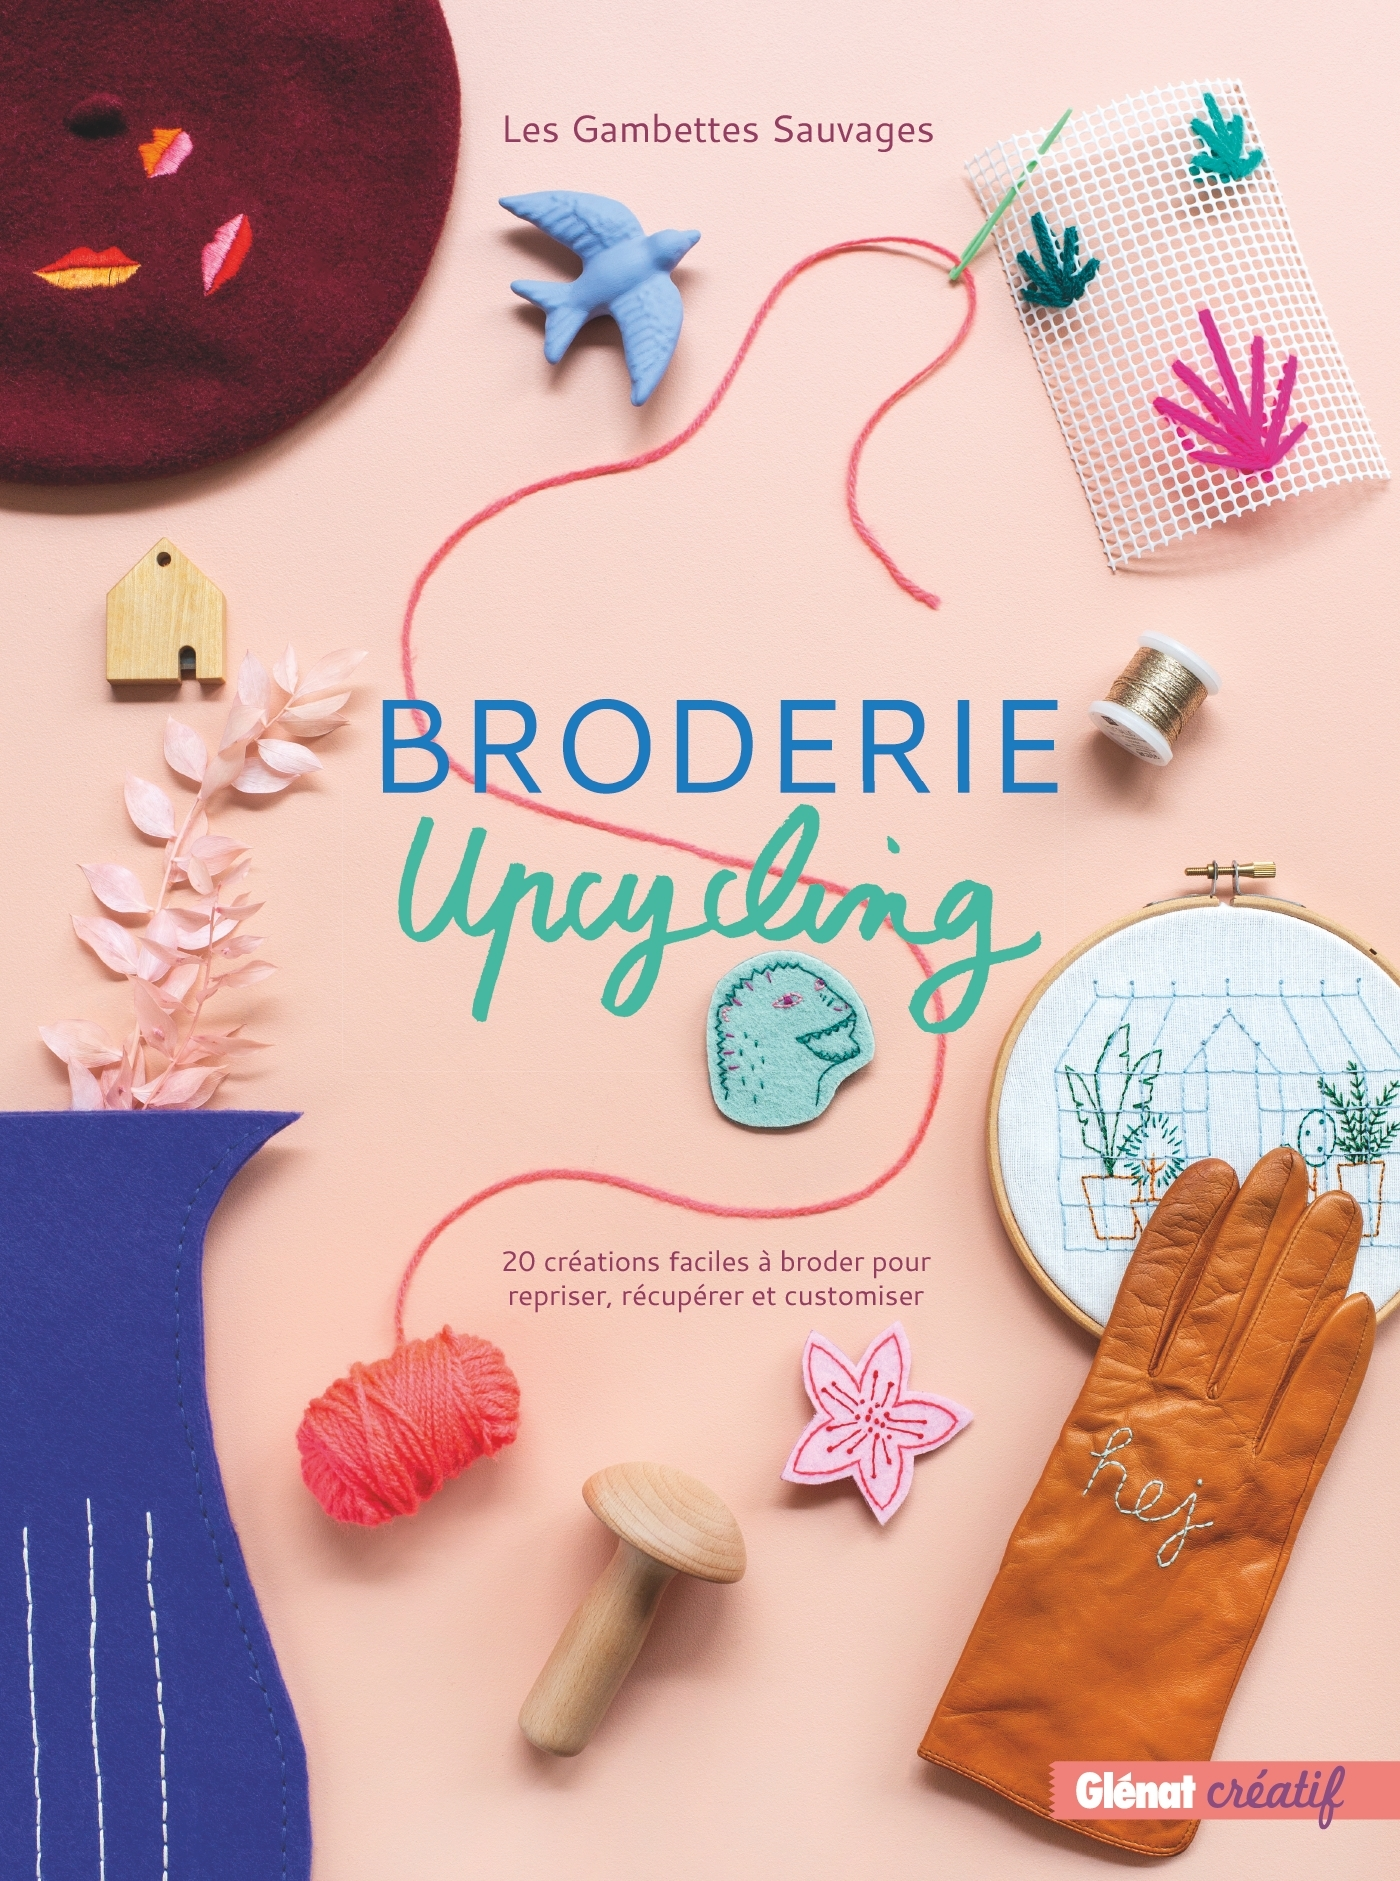 BRODERIE UPCYCLING - 20 CREATIONS FACILES A BRODER POUR REPRISER, RECUPERER ET CUSTOMISER